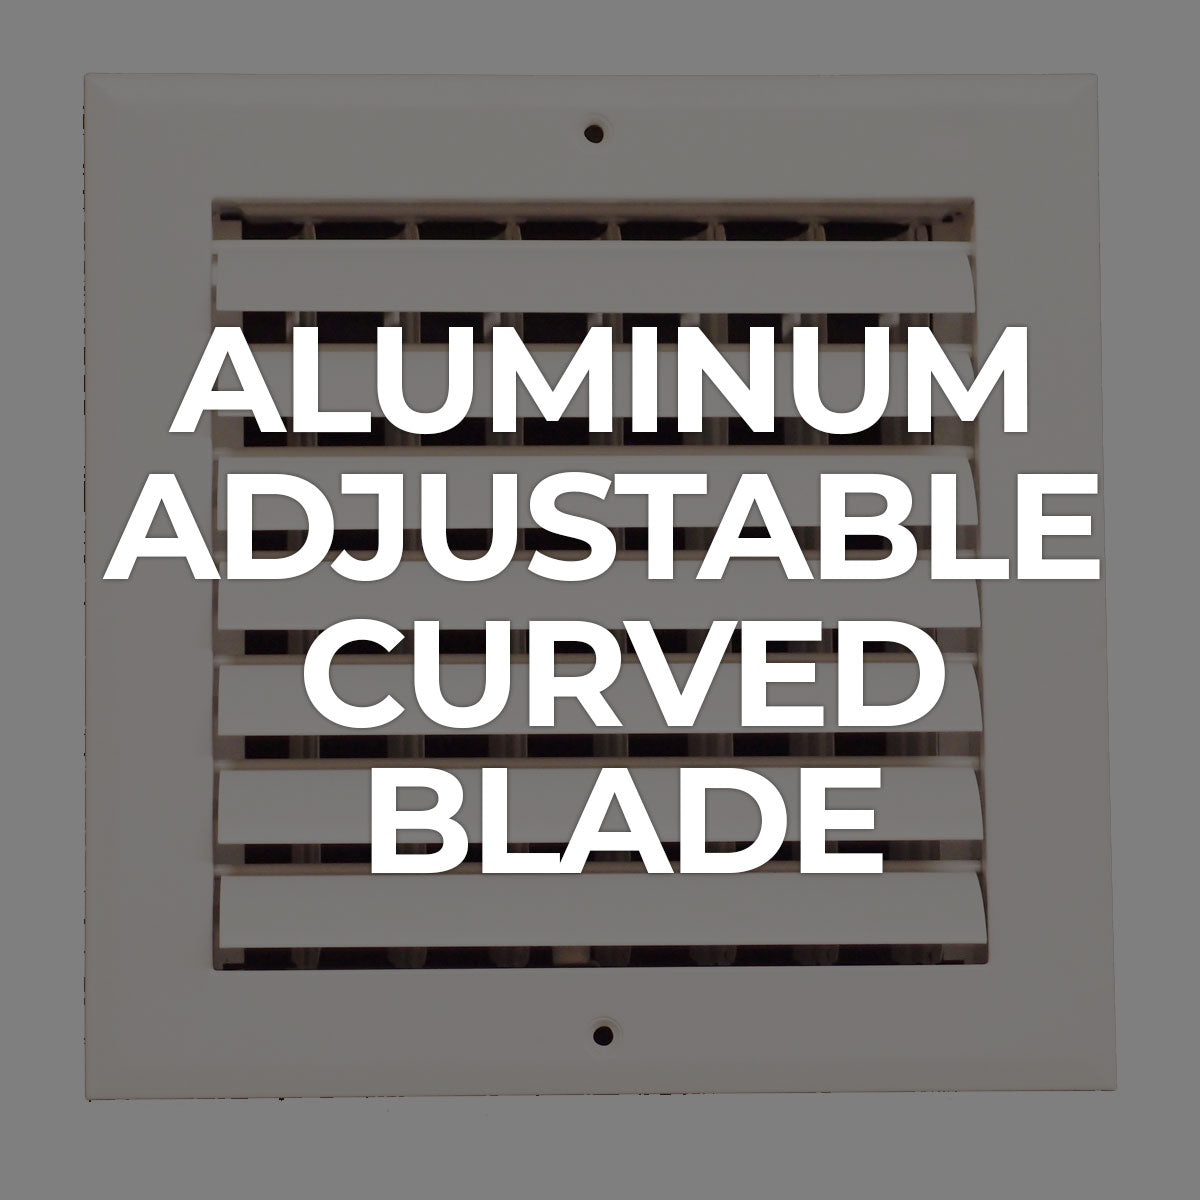 Supply / Aluminum Adjustable Curved Blade